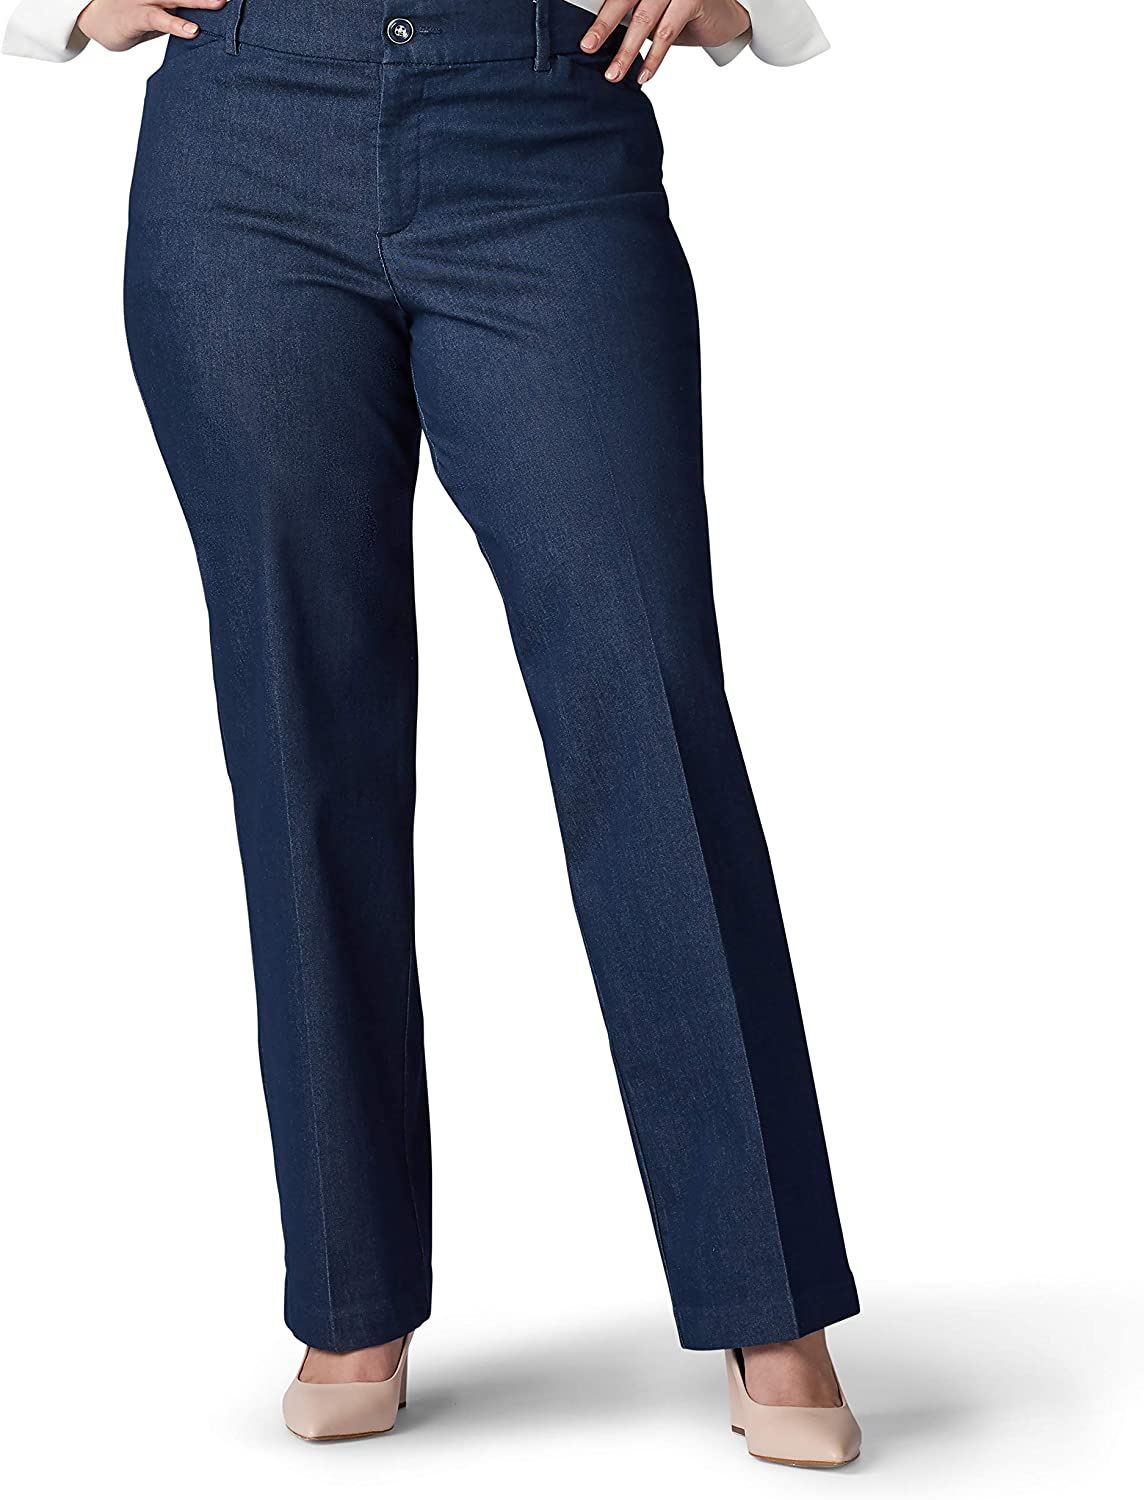 Lee Women's Plus Size At the price of surprise Flex Fit Motion Max 86% OFF Pant Trouser Regular